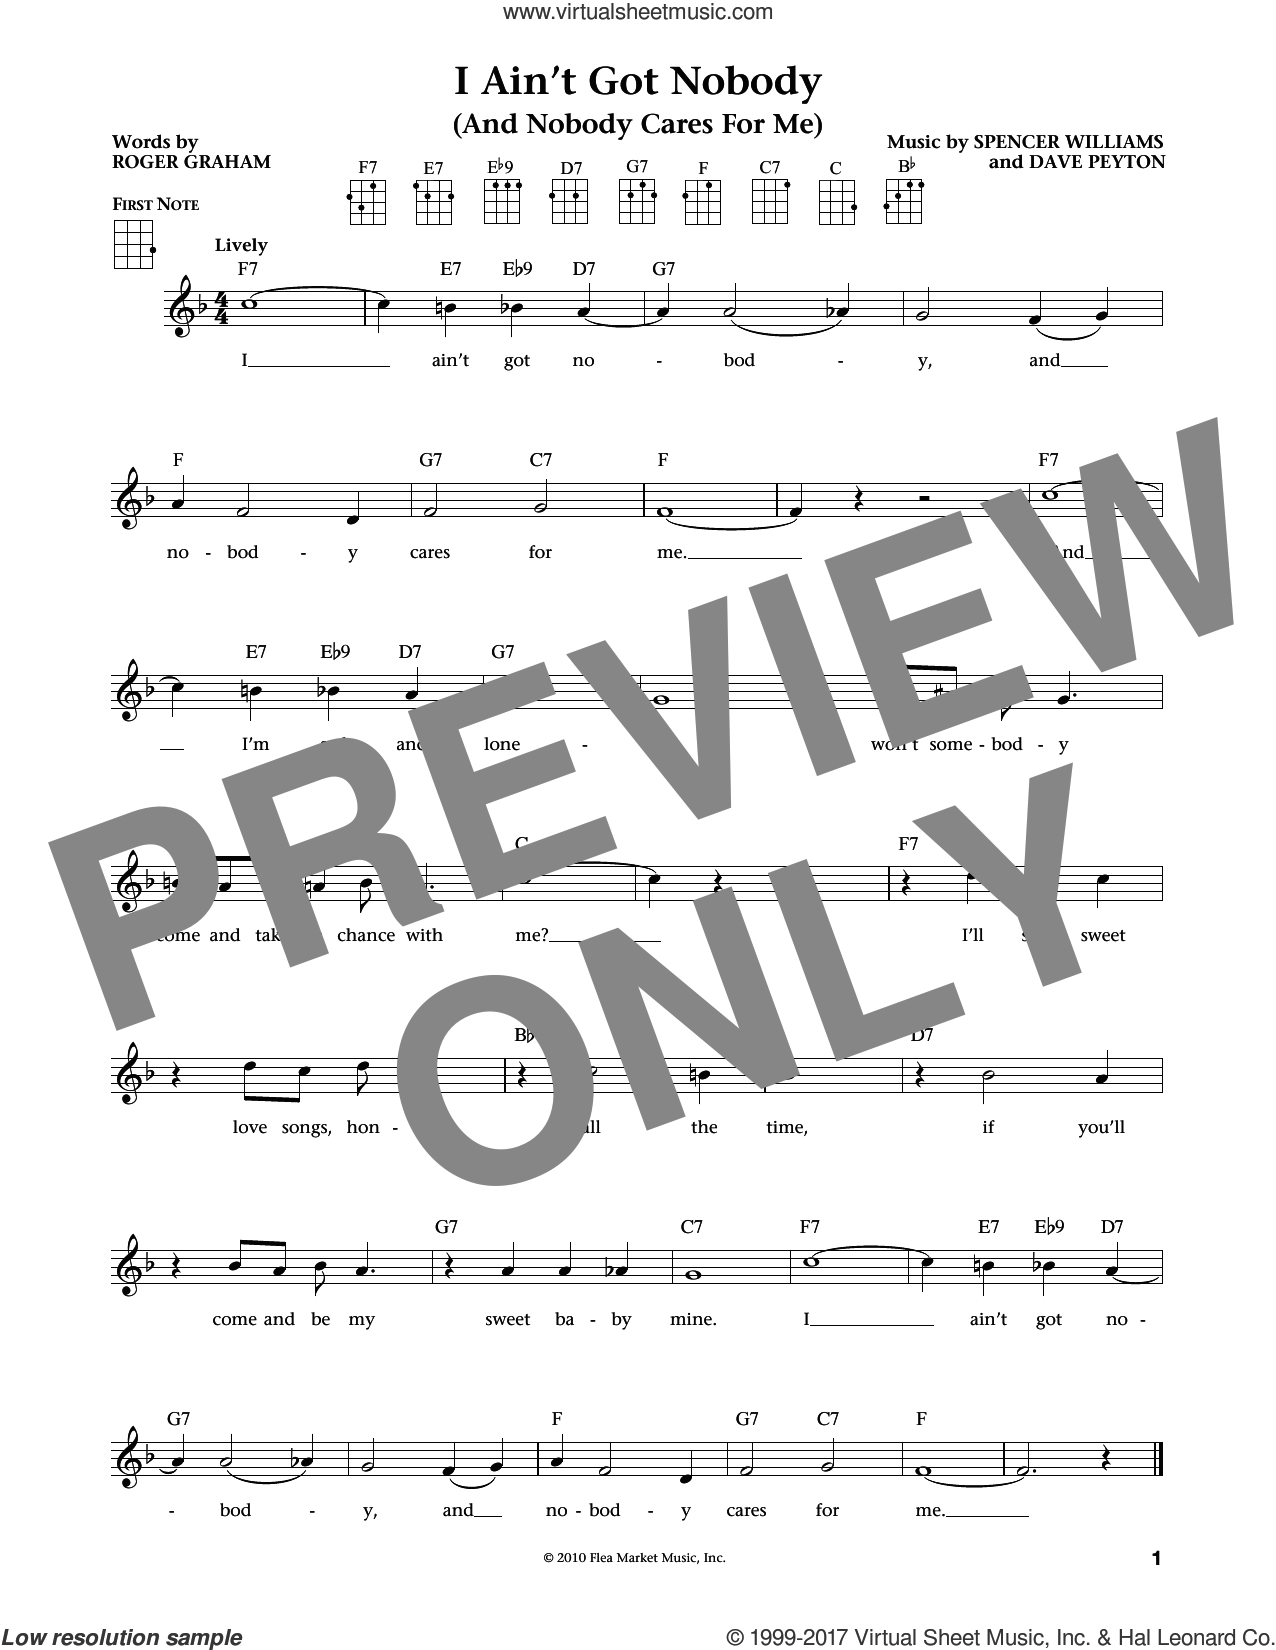 I Ain't Got Nobody (And Nobody Cares For Me) (from The Daily Ukulele) (arr. Liz and Jim Beloff) sheet music for ukulele by Bessie Smith, Jim Beloff and Liz Beloff, intermediate skill level